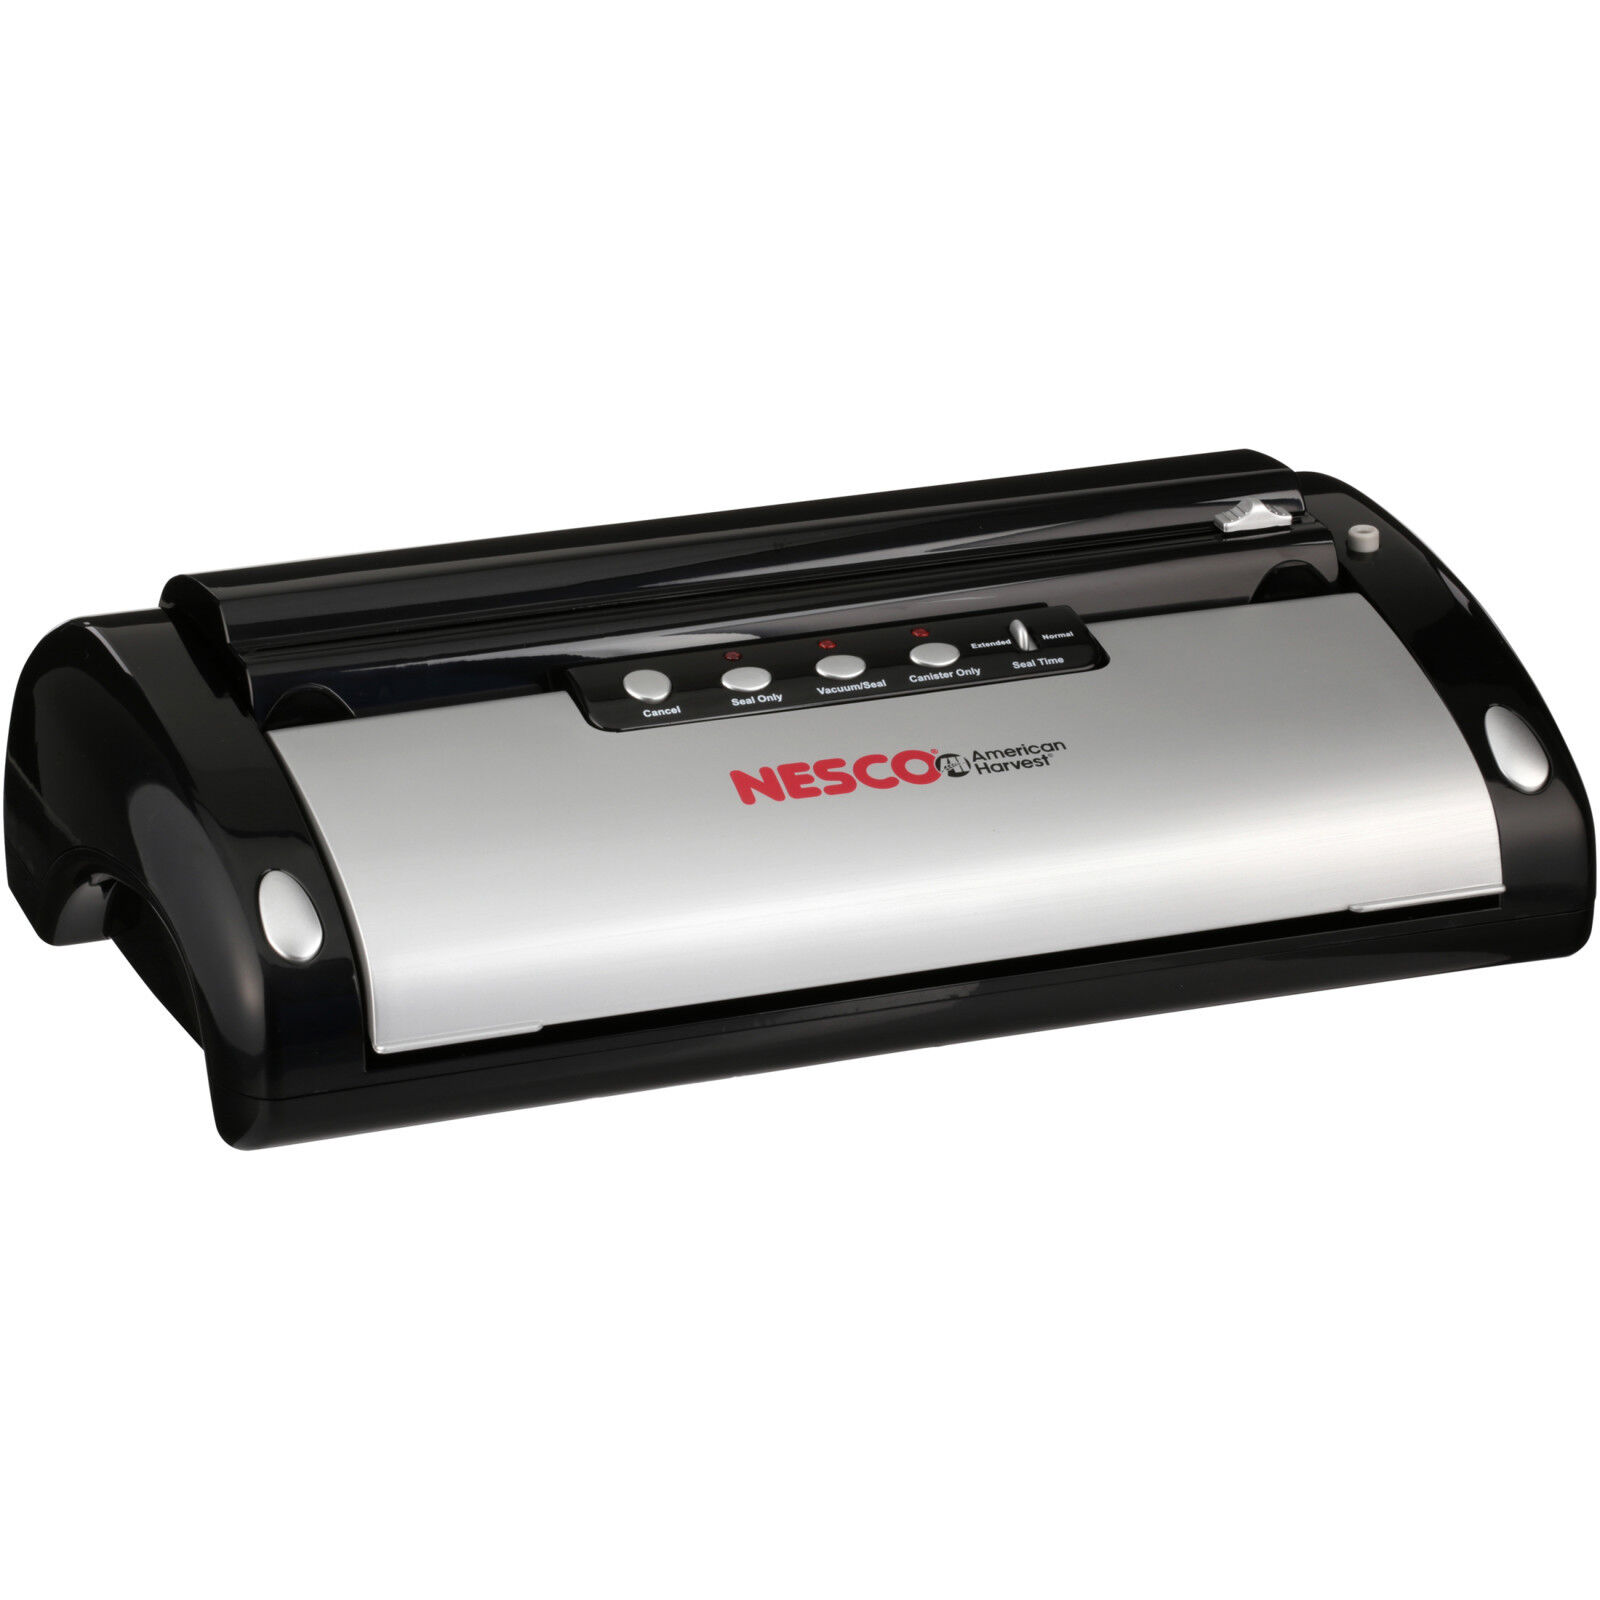 Nesco VS-02 130 Watt Vacuum Sealer, Black & Silver w/ Bag Cu